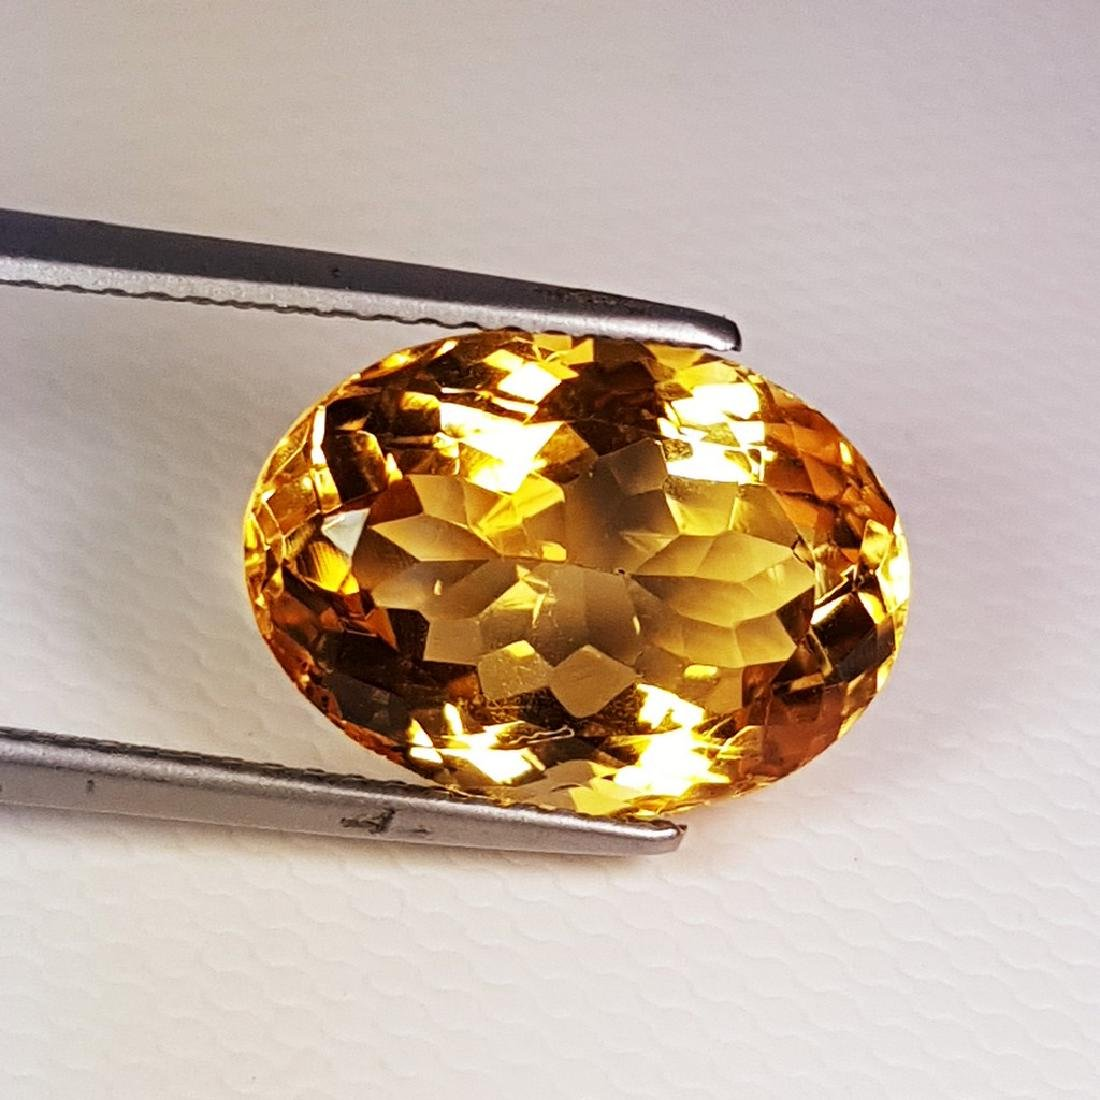 Marvelous Oval Cut Natural Citrine - 6.34 ct